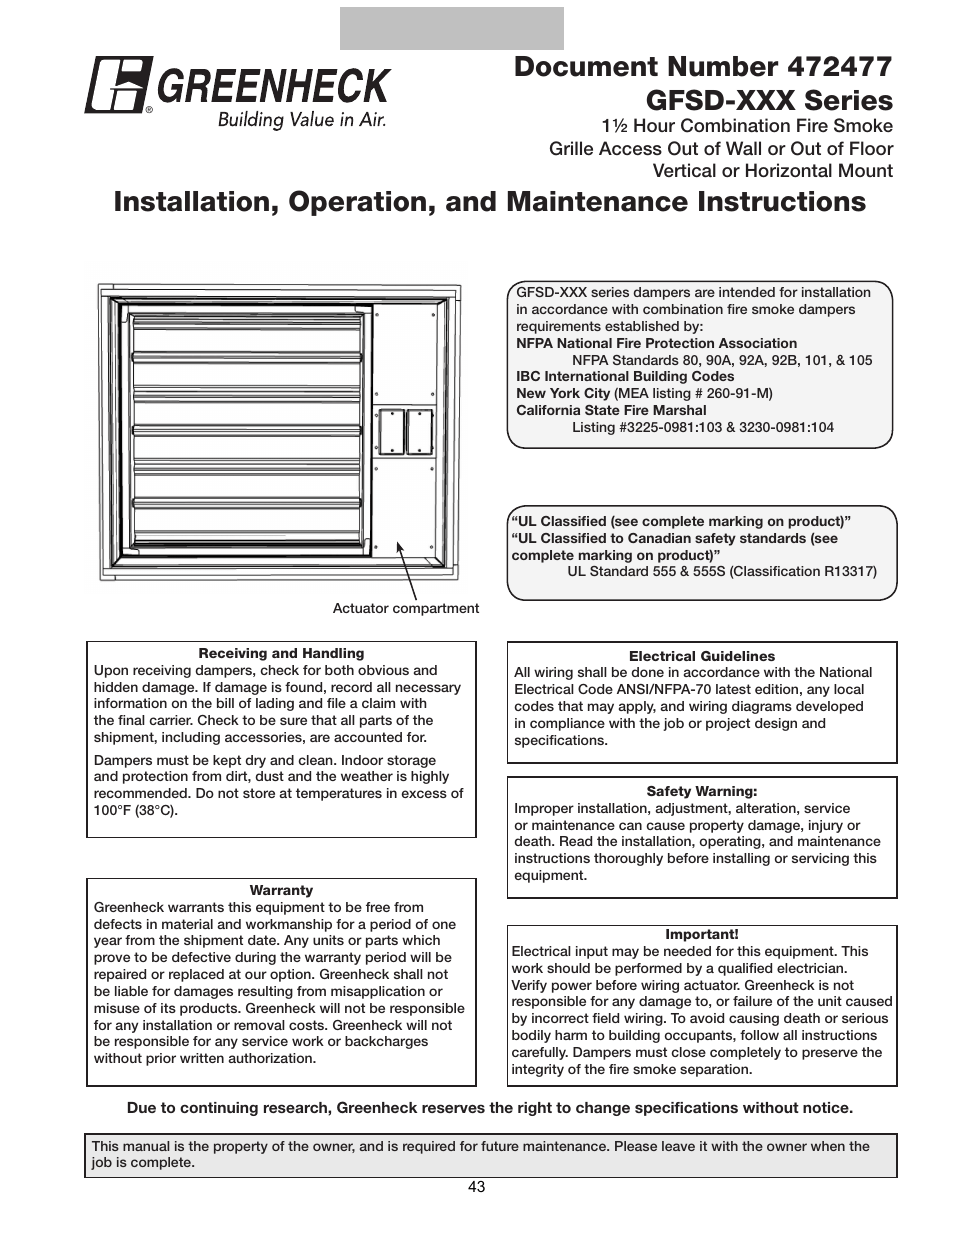 smoke damper wiring diagram 2008 ford f150 diagrams greenheck multi blade fire combination dampers installation booklet 826249 user manual page 43 52 also for dfdr 462721